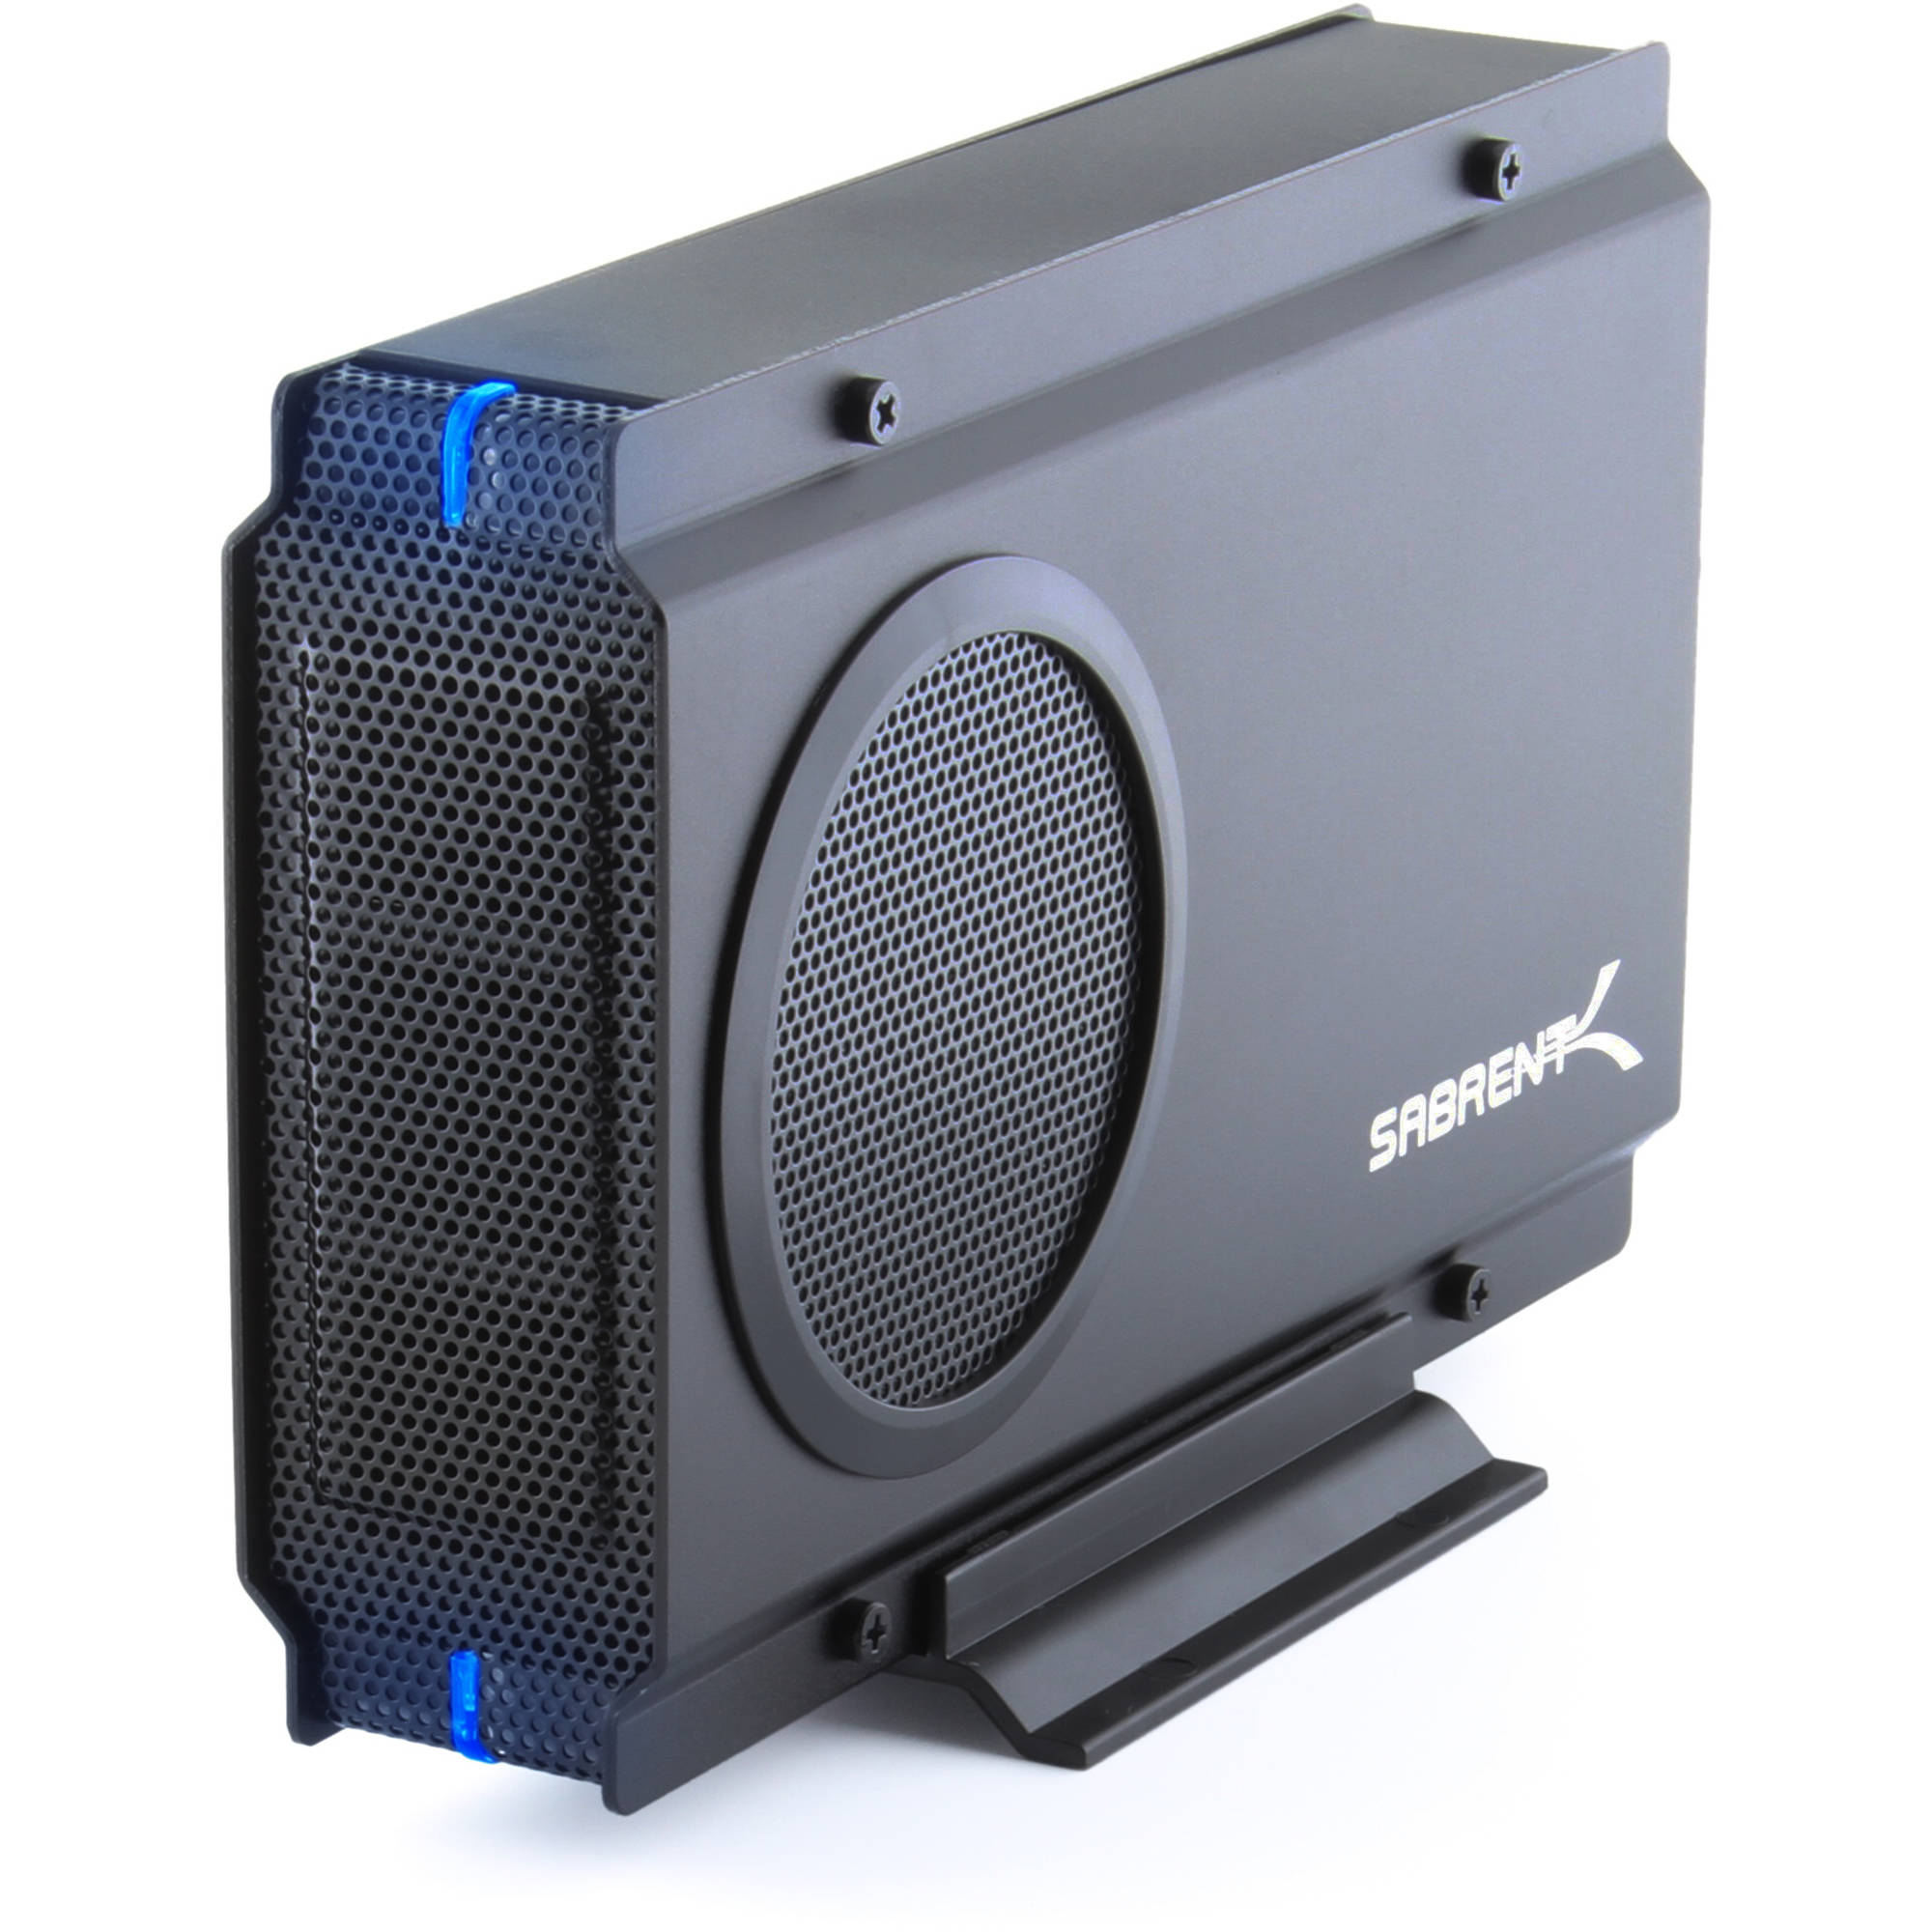 "Sabrent 3.5"" USB 3.0 SATA Case with Fan"